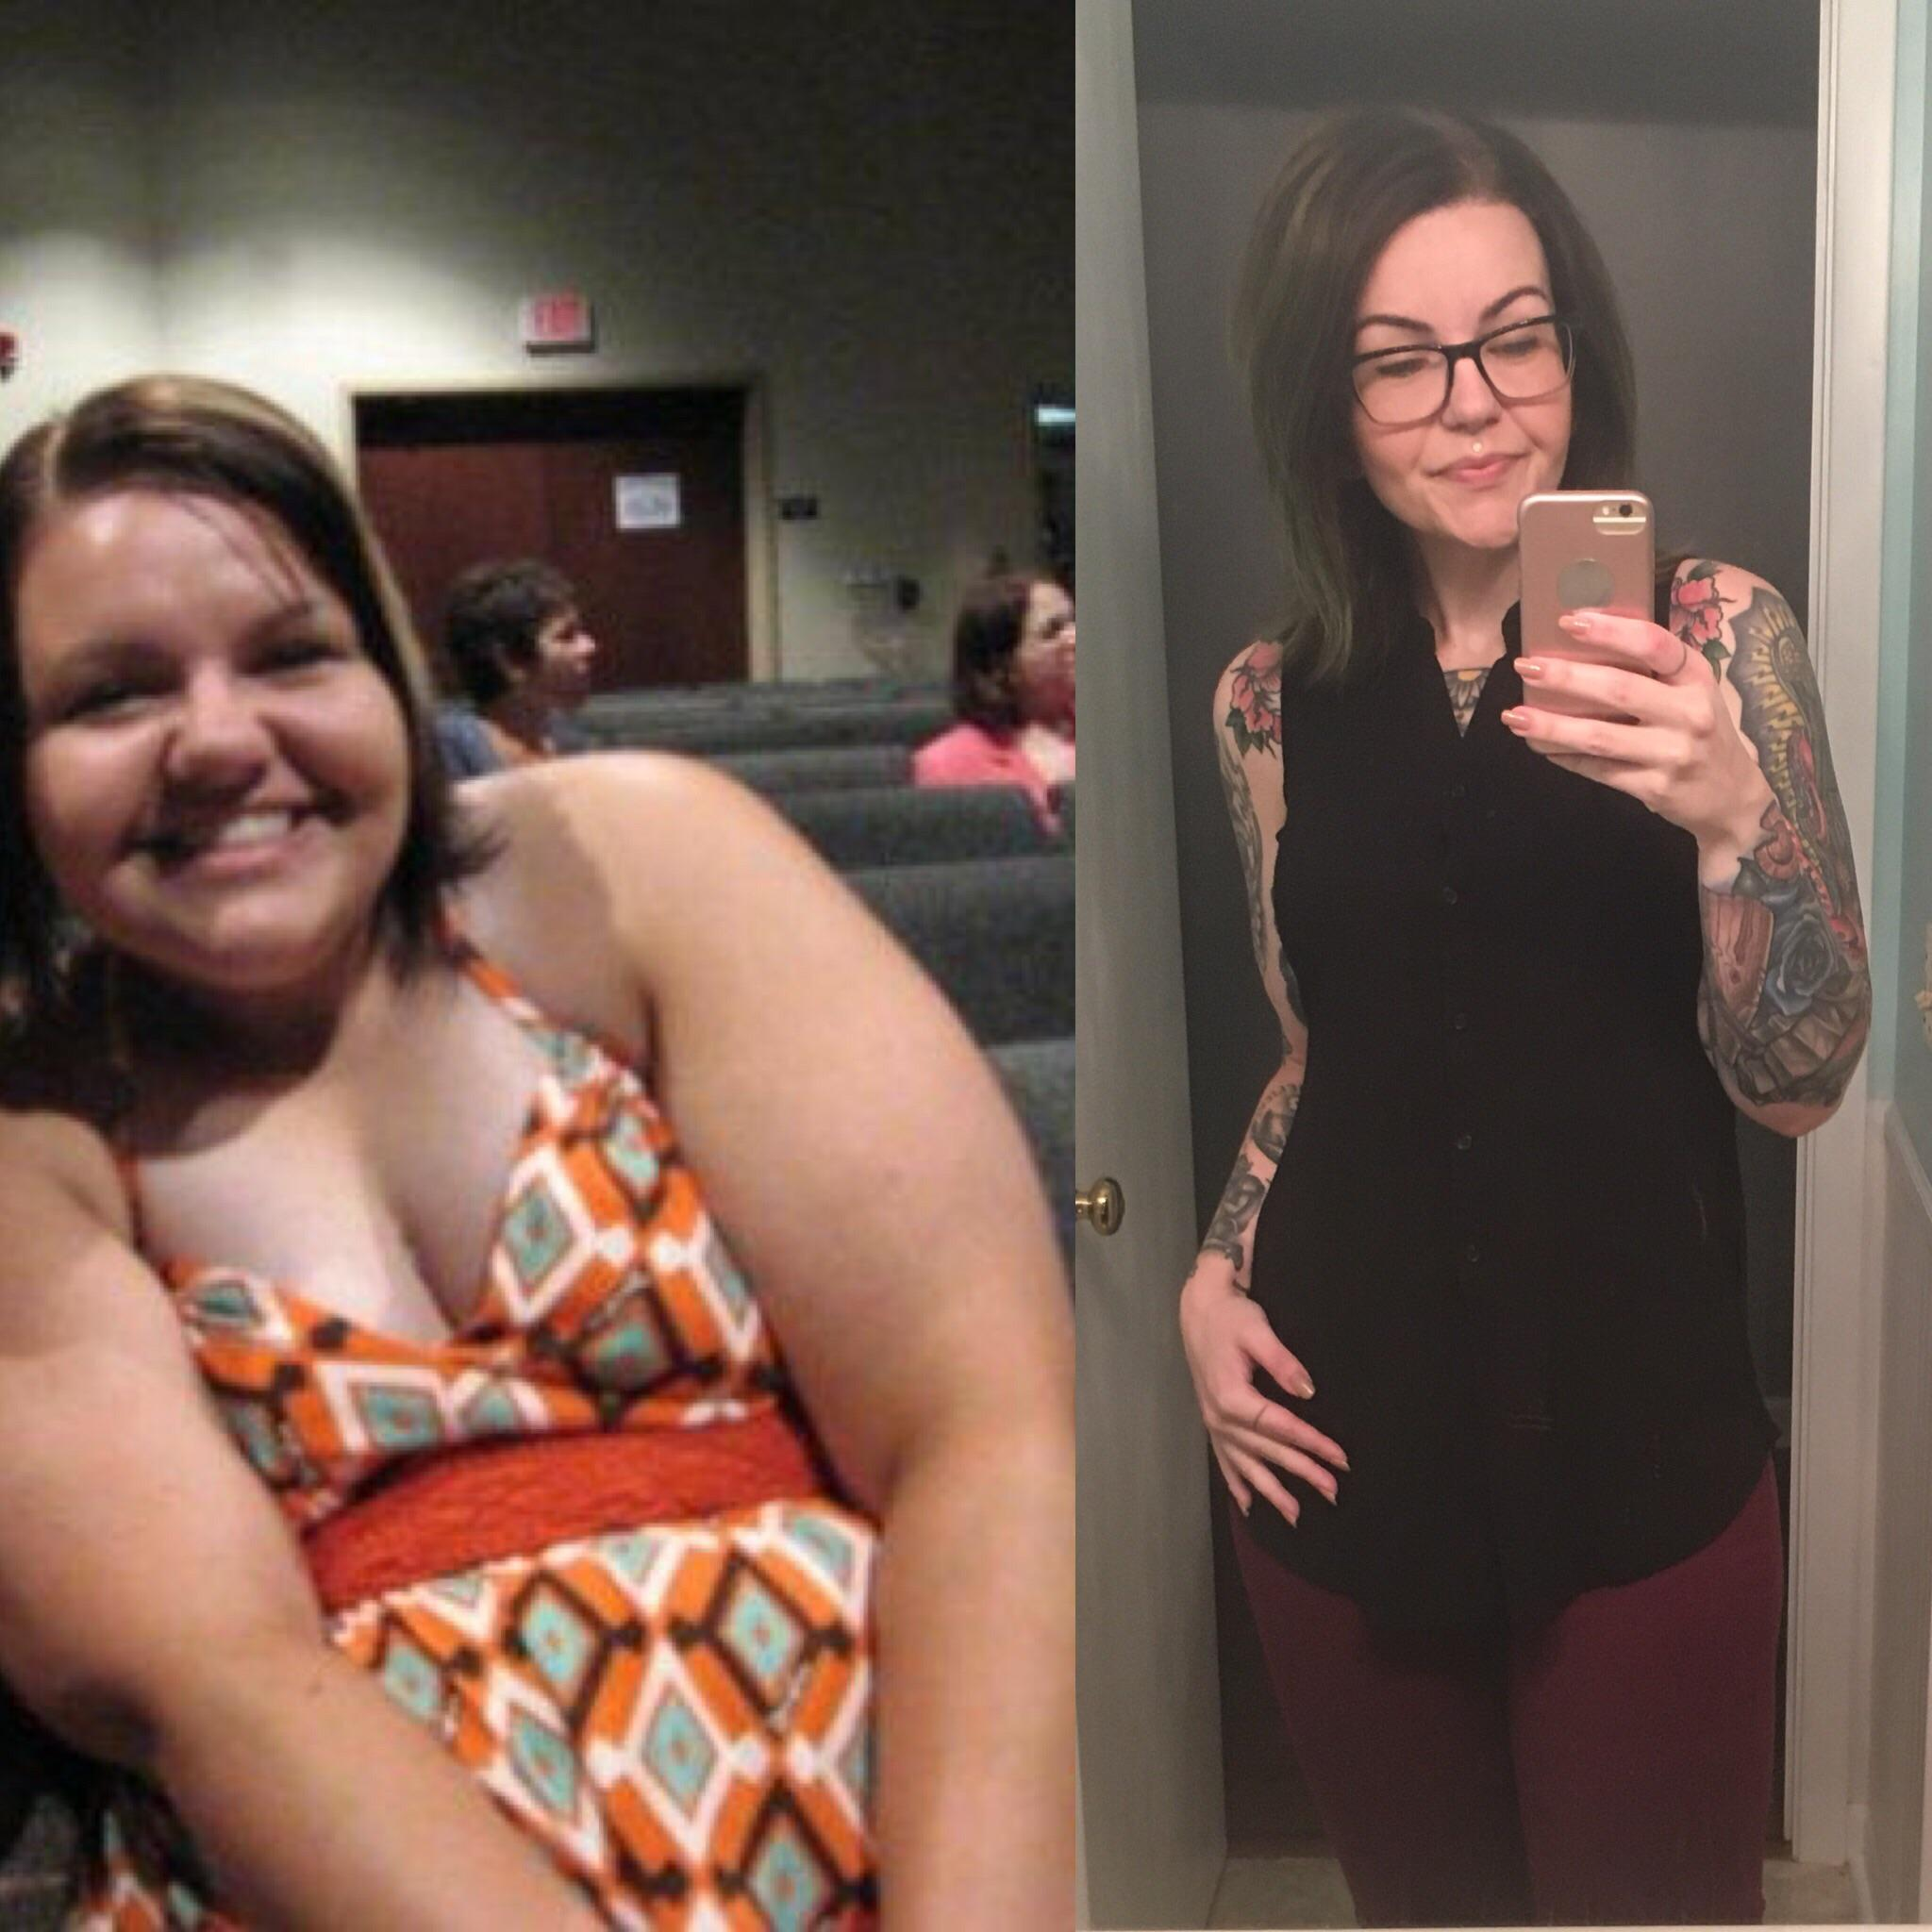 60 lbs Weight Loss Before and After 5'8 Female 216 lbs to 156 lbs